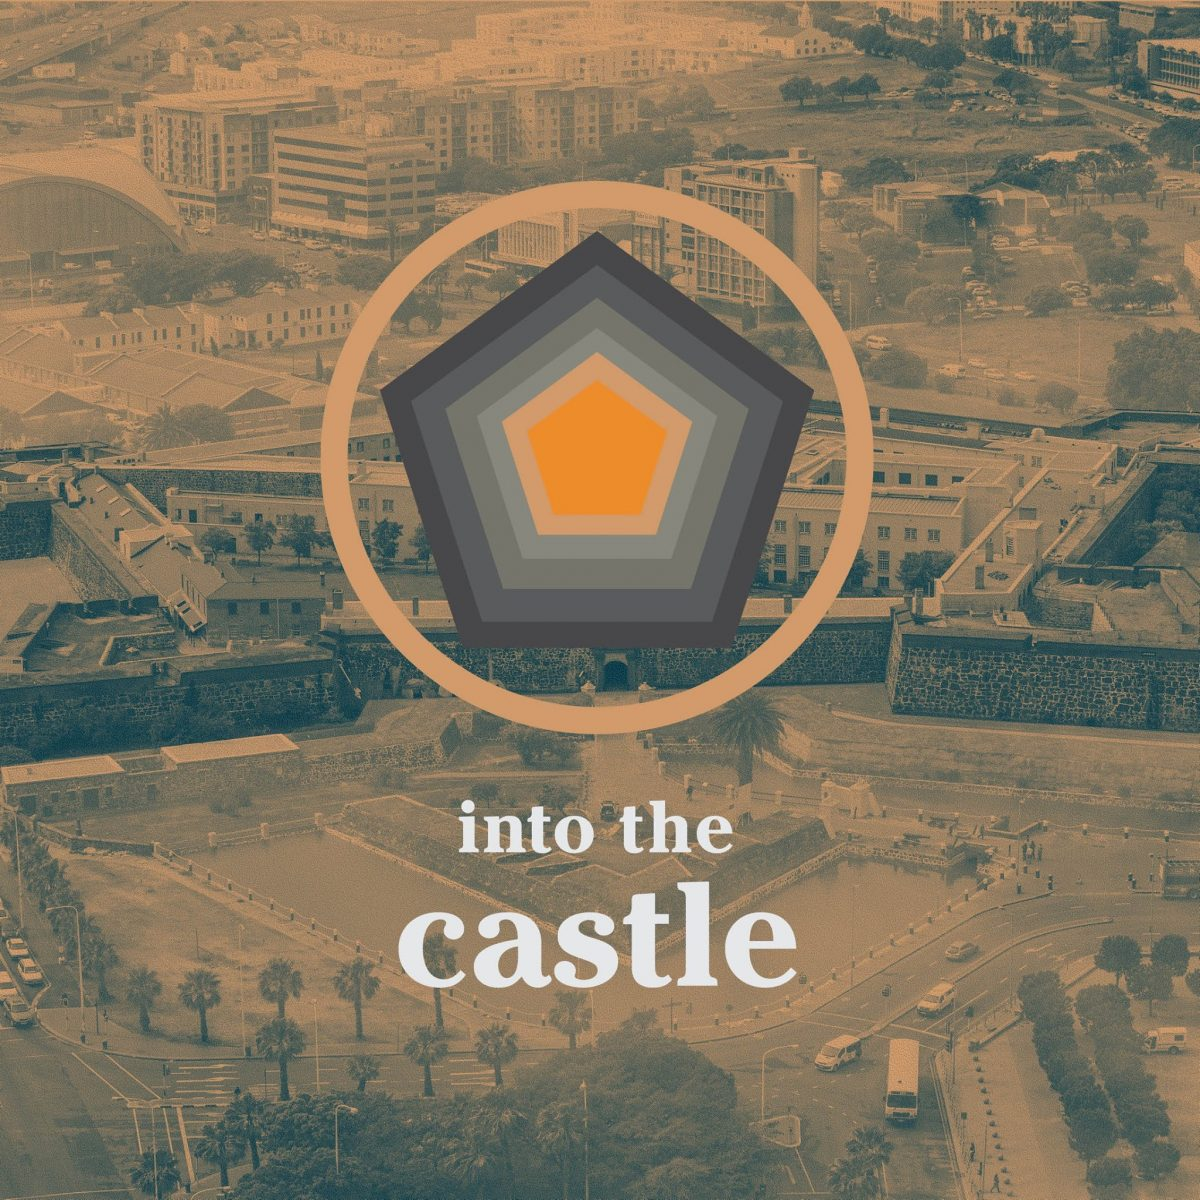 South Africa's Into the Castle Festival is Cancelled